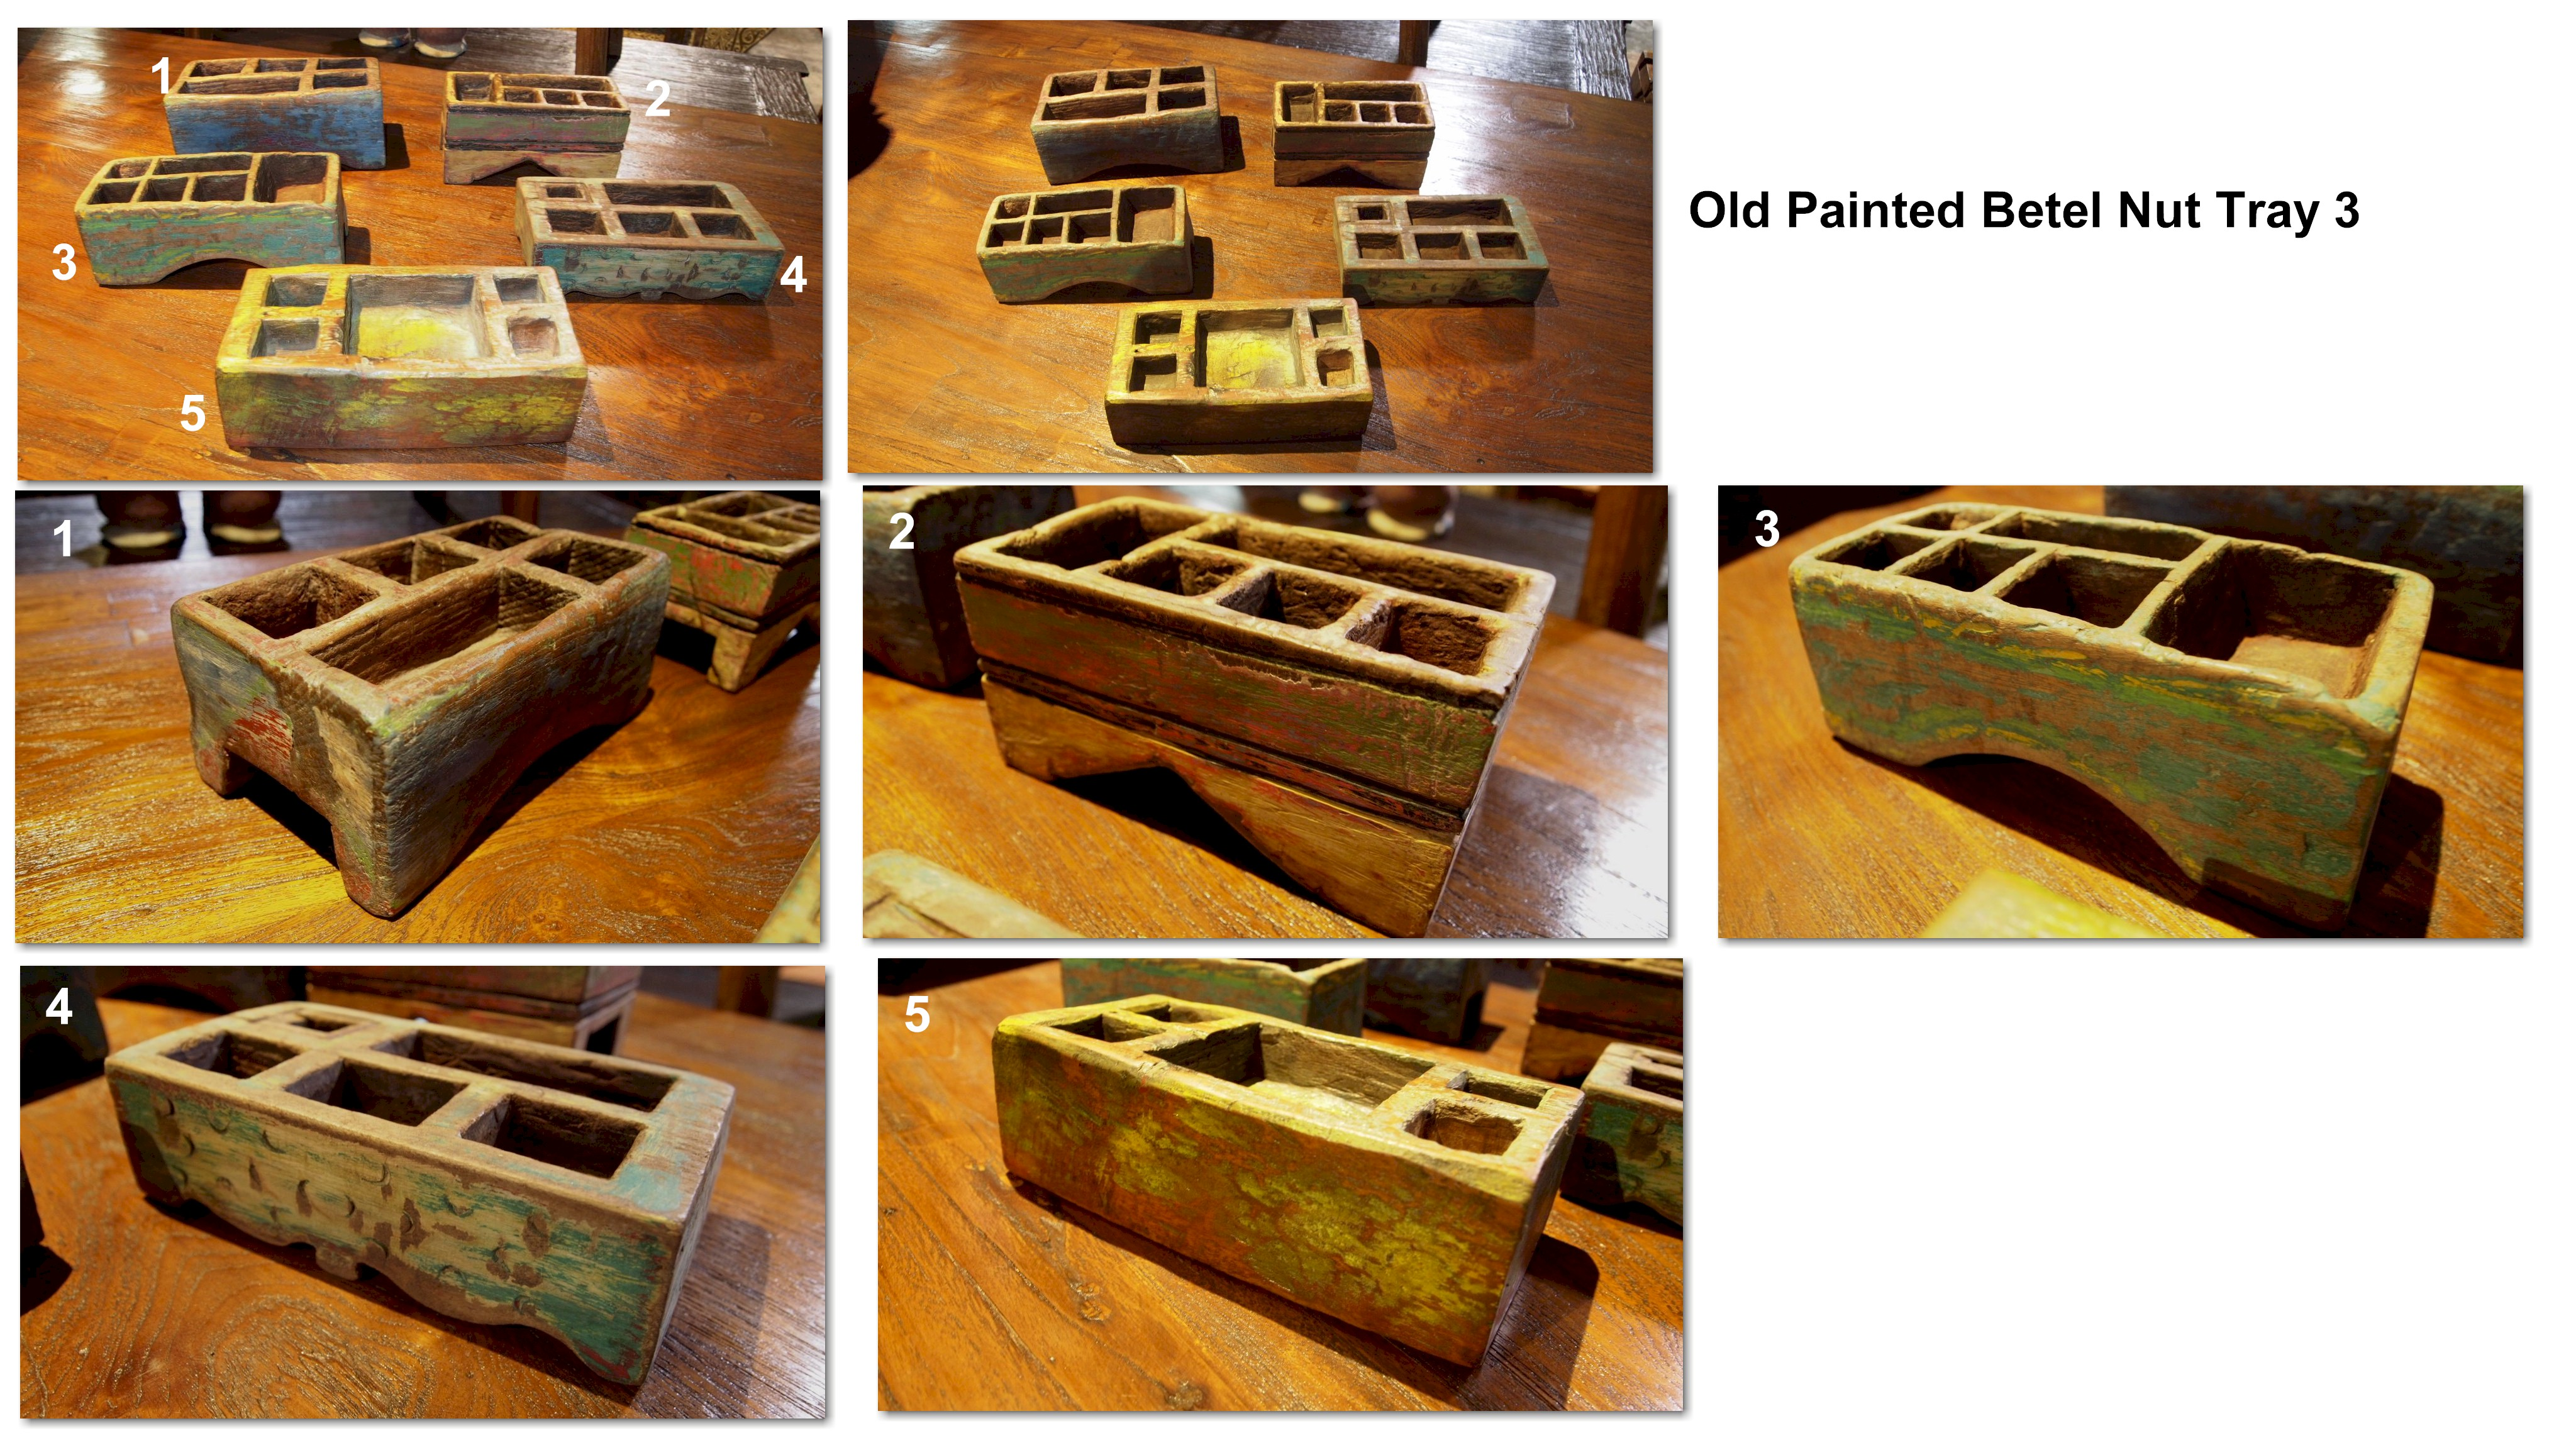 Old Painted Betel Nut Tray 3